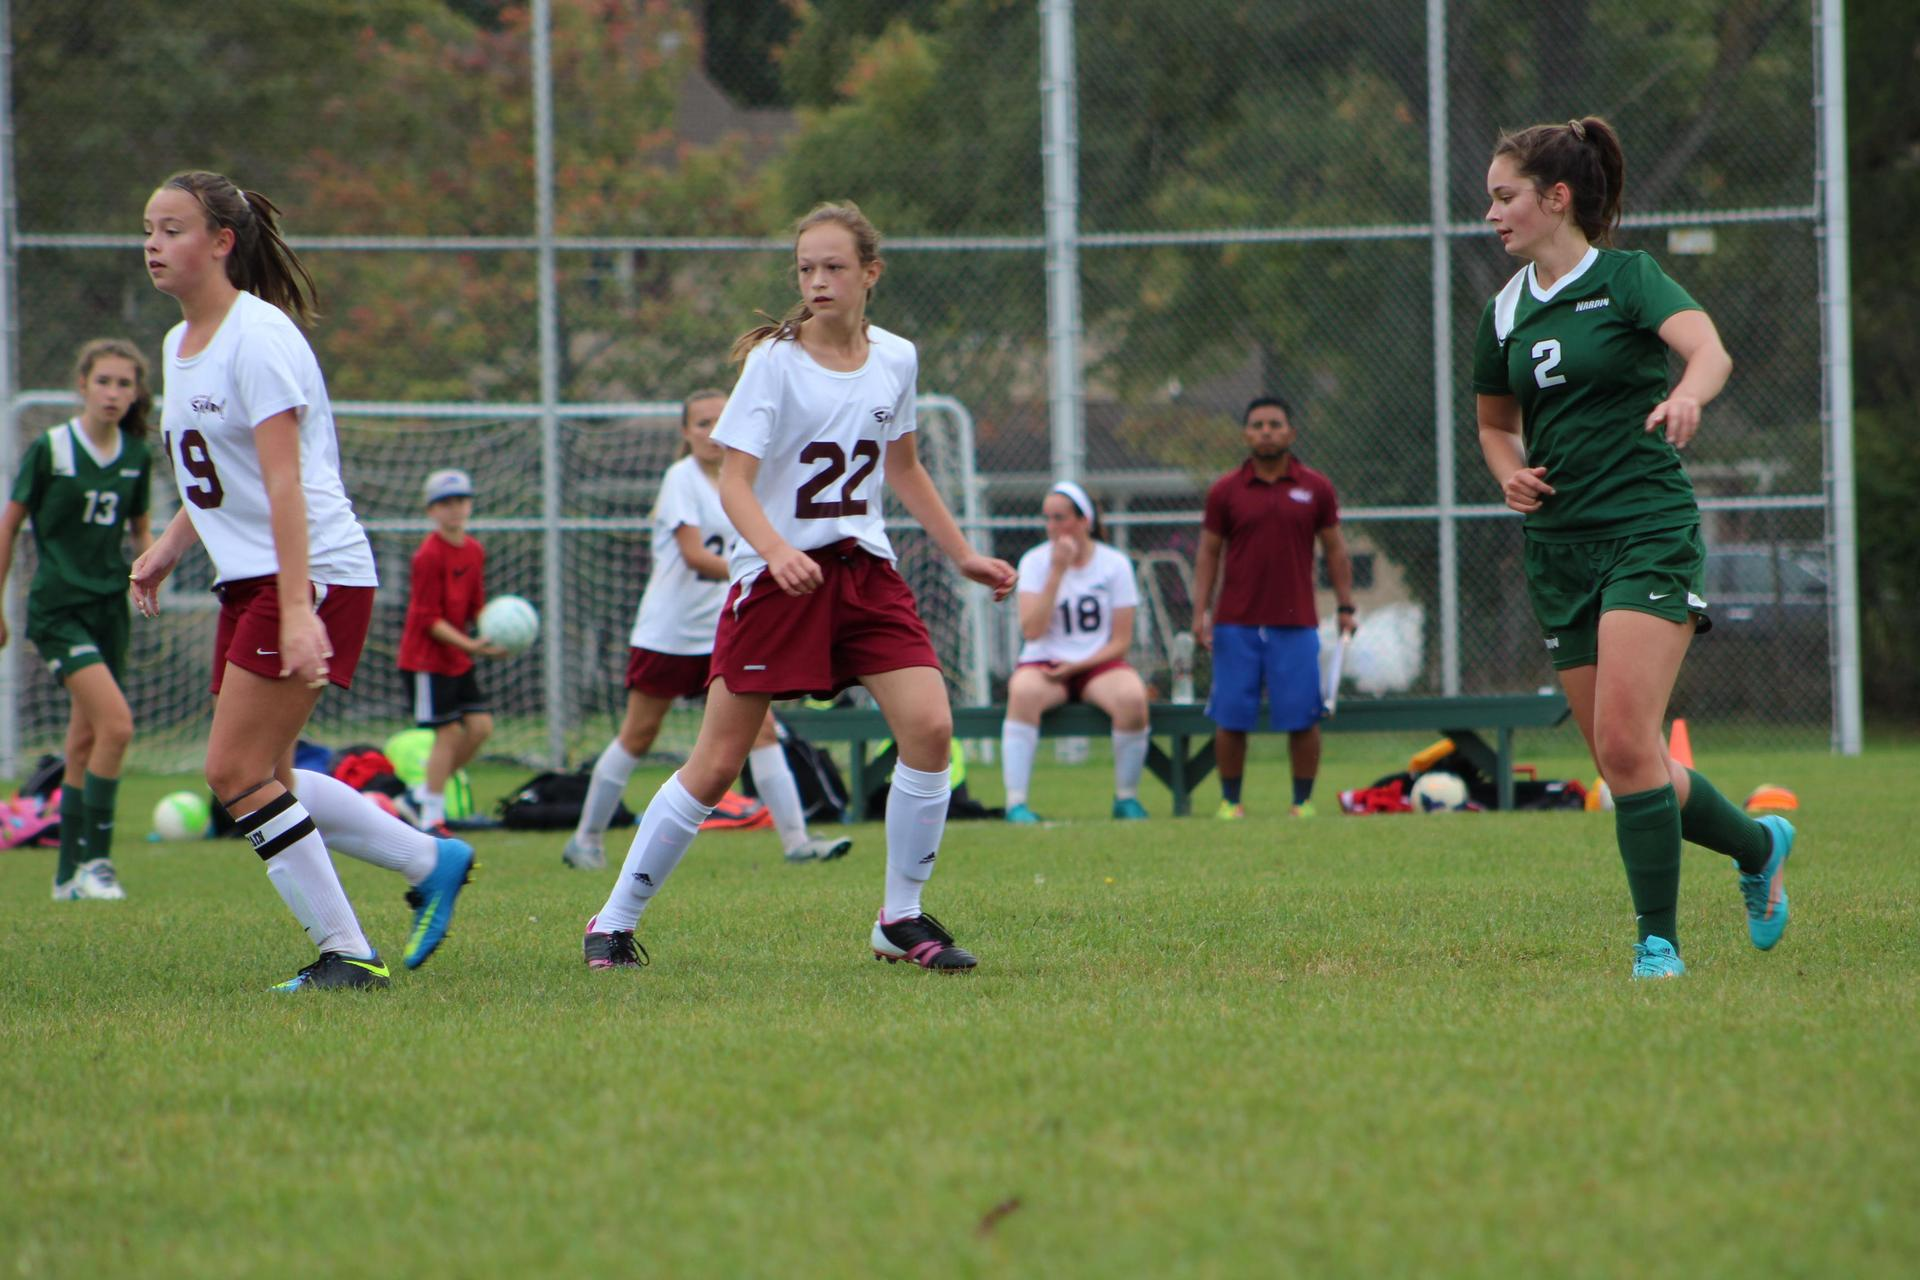 JV soccer action on the field